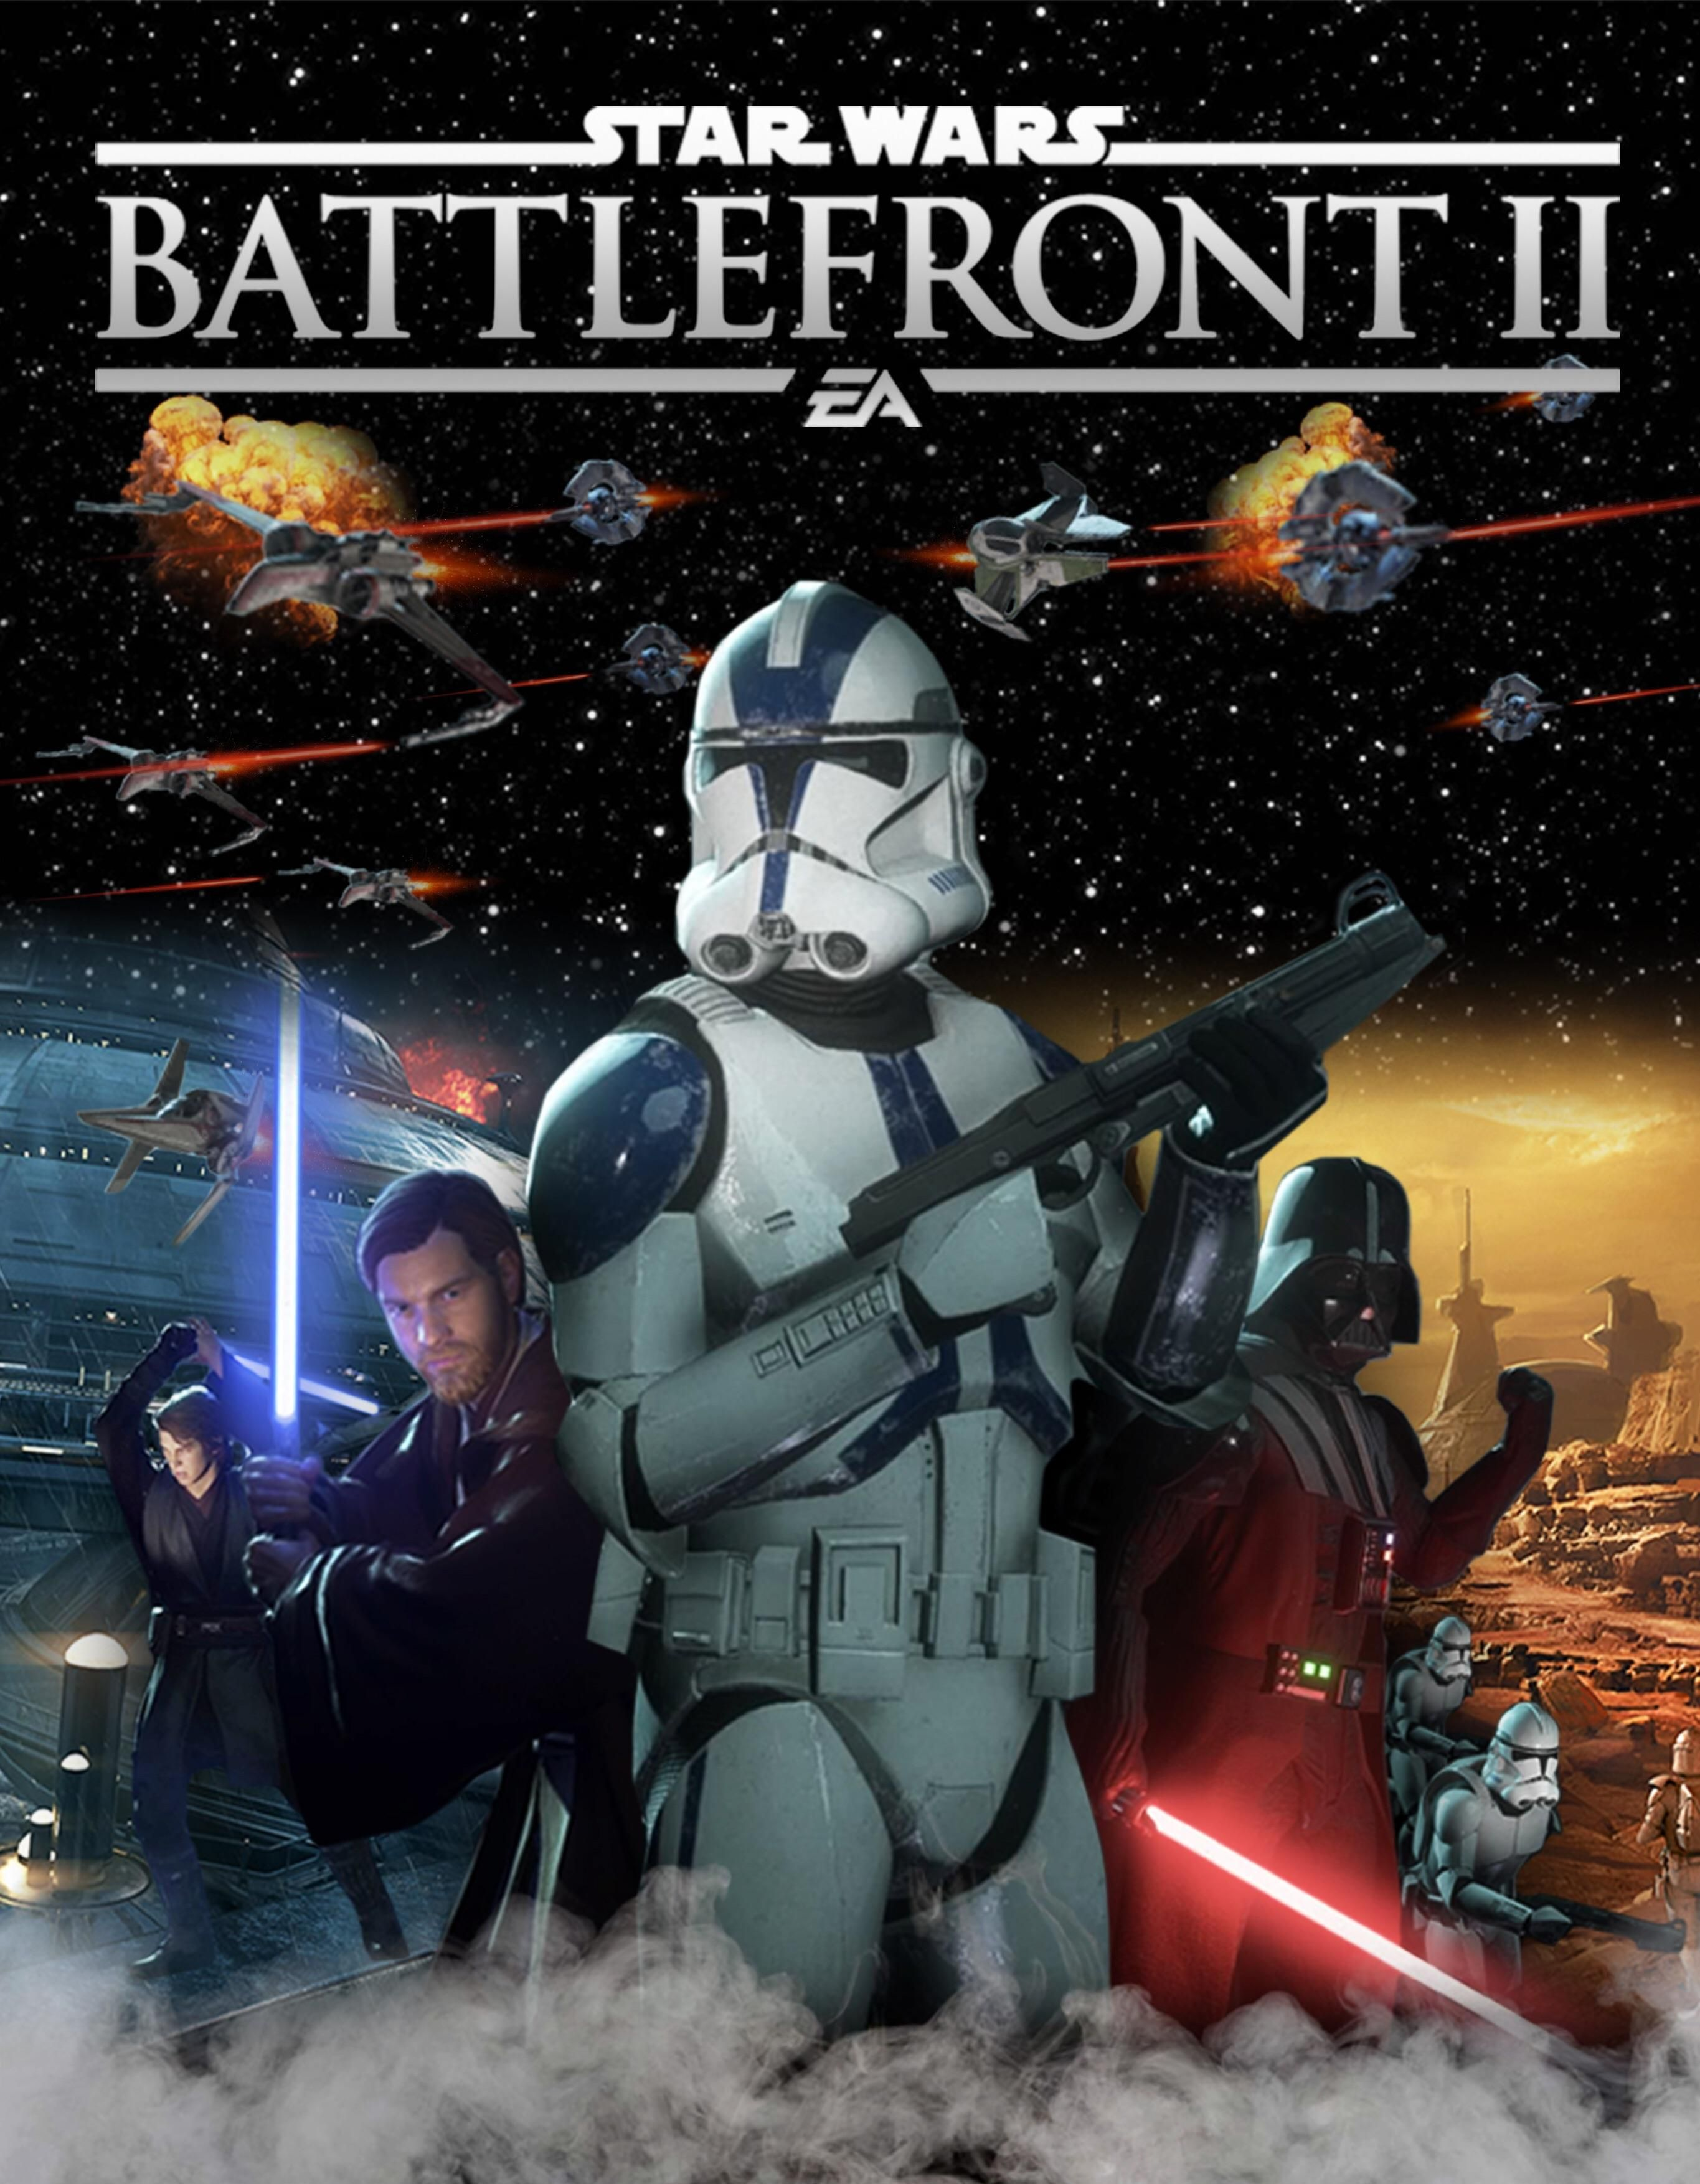 I Attempted To Recreate The Battlefront 2 2005 Cover Art Hope You All Enjoy Starwarsbattlefront Battlefront Star Wars Video Games Star Wars Battlefront